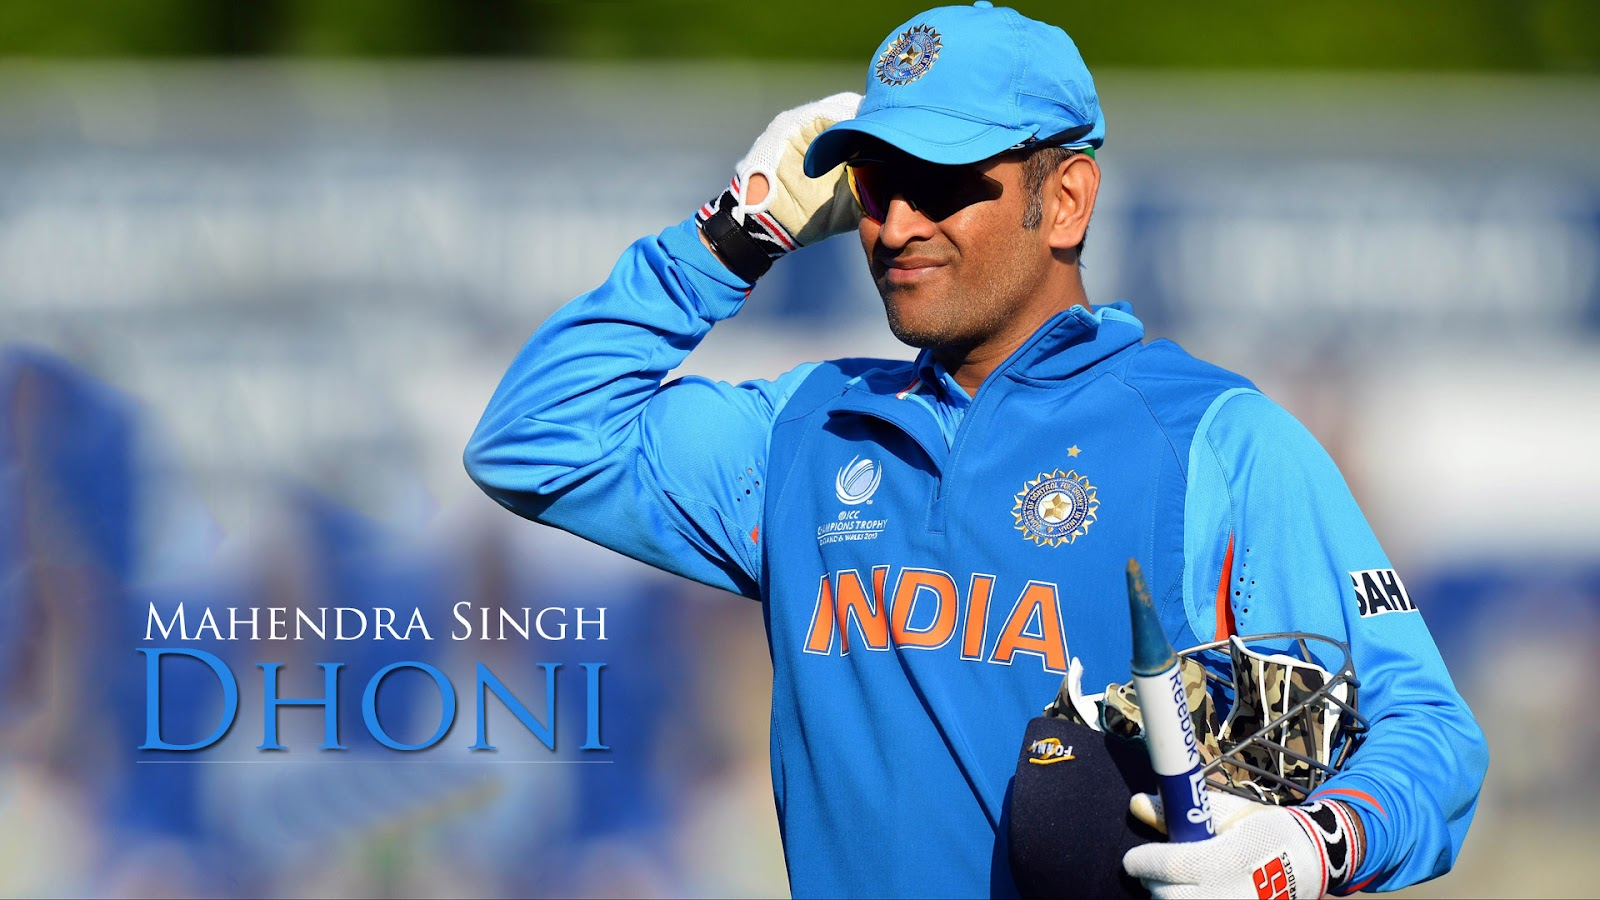 ms dhoni 1080p hd wallpaper images photos hd